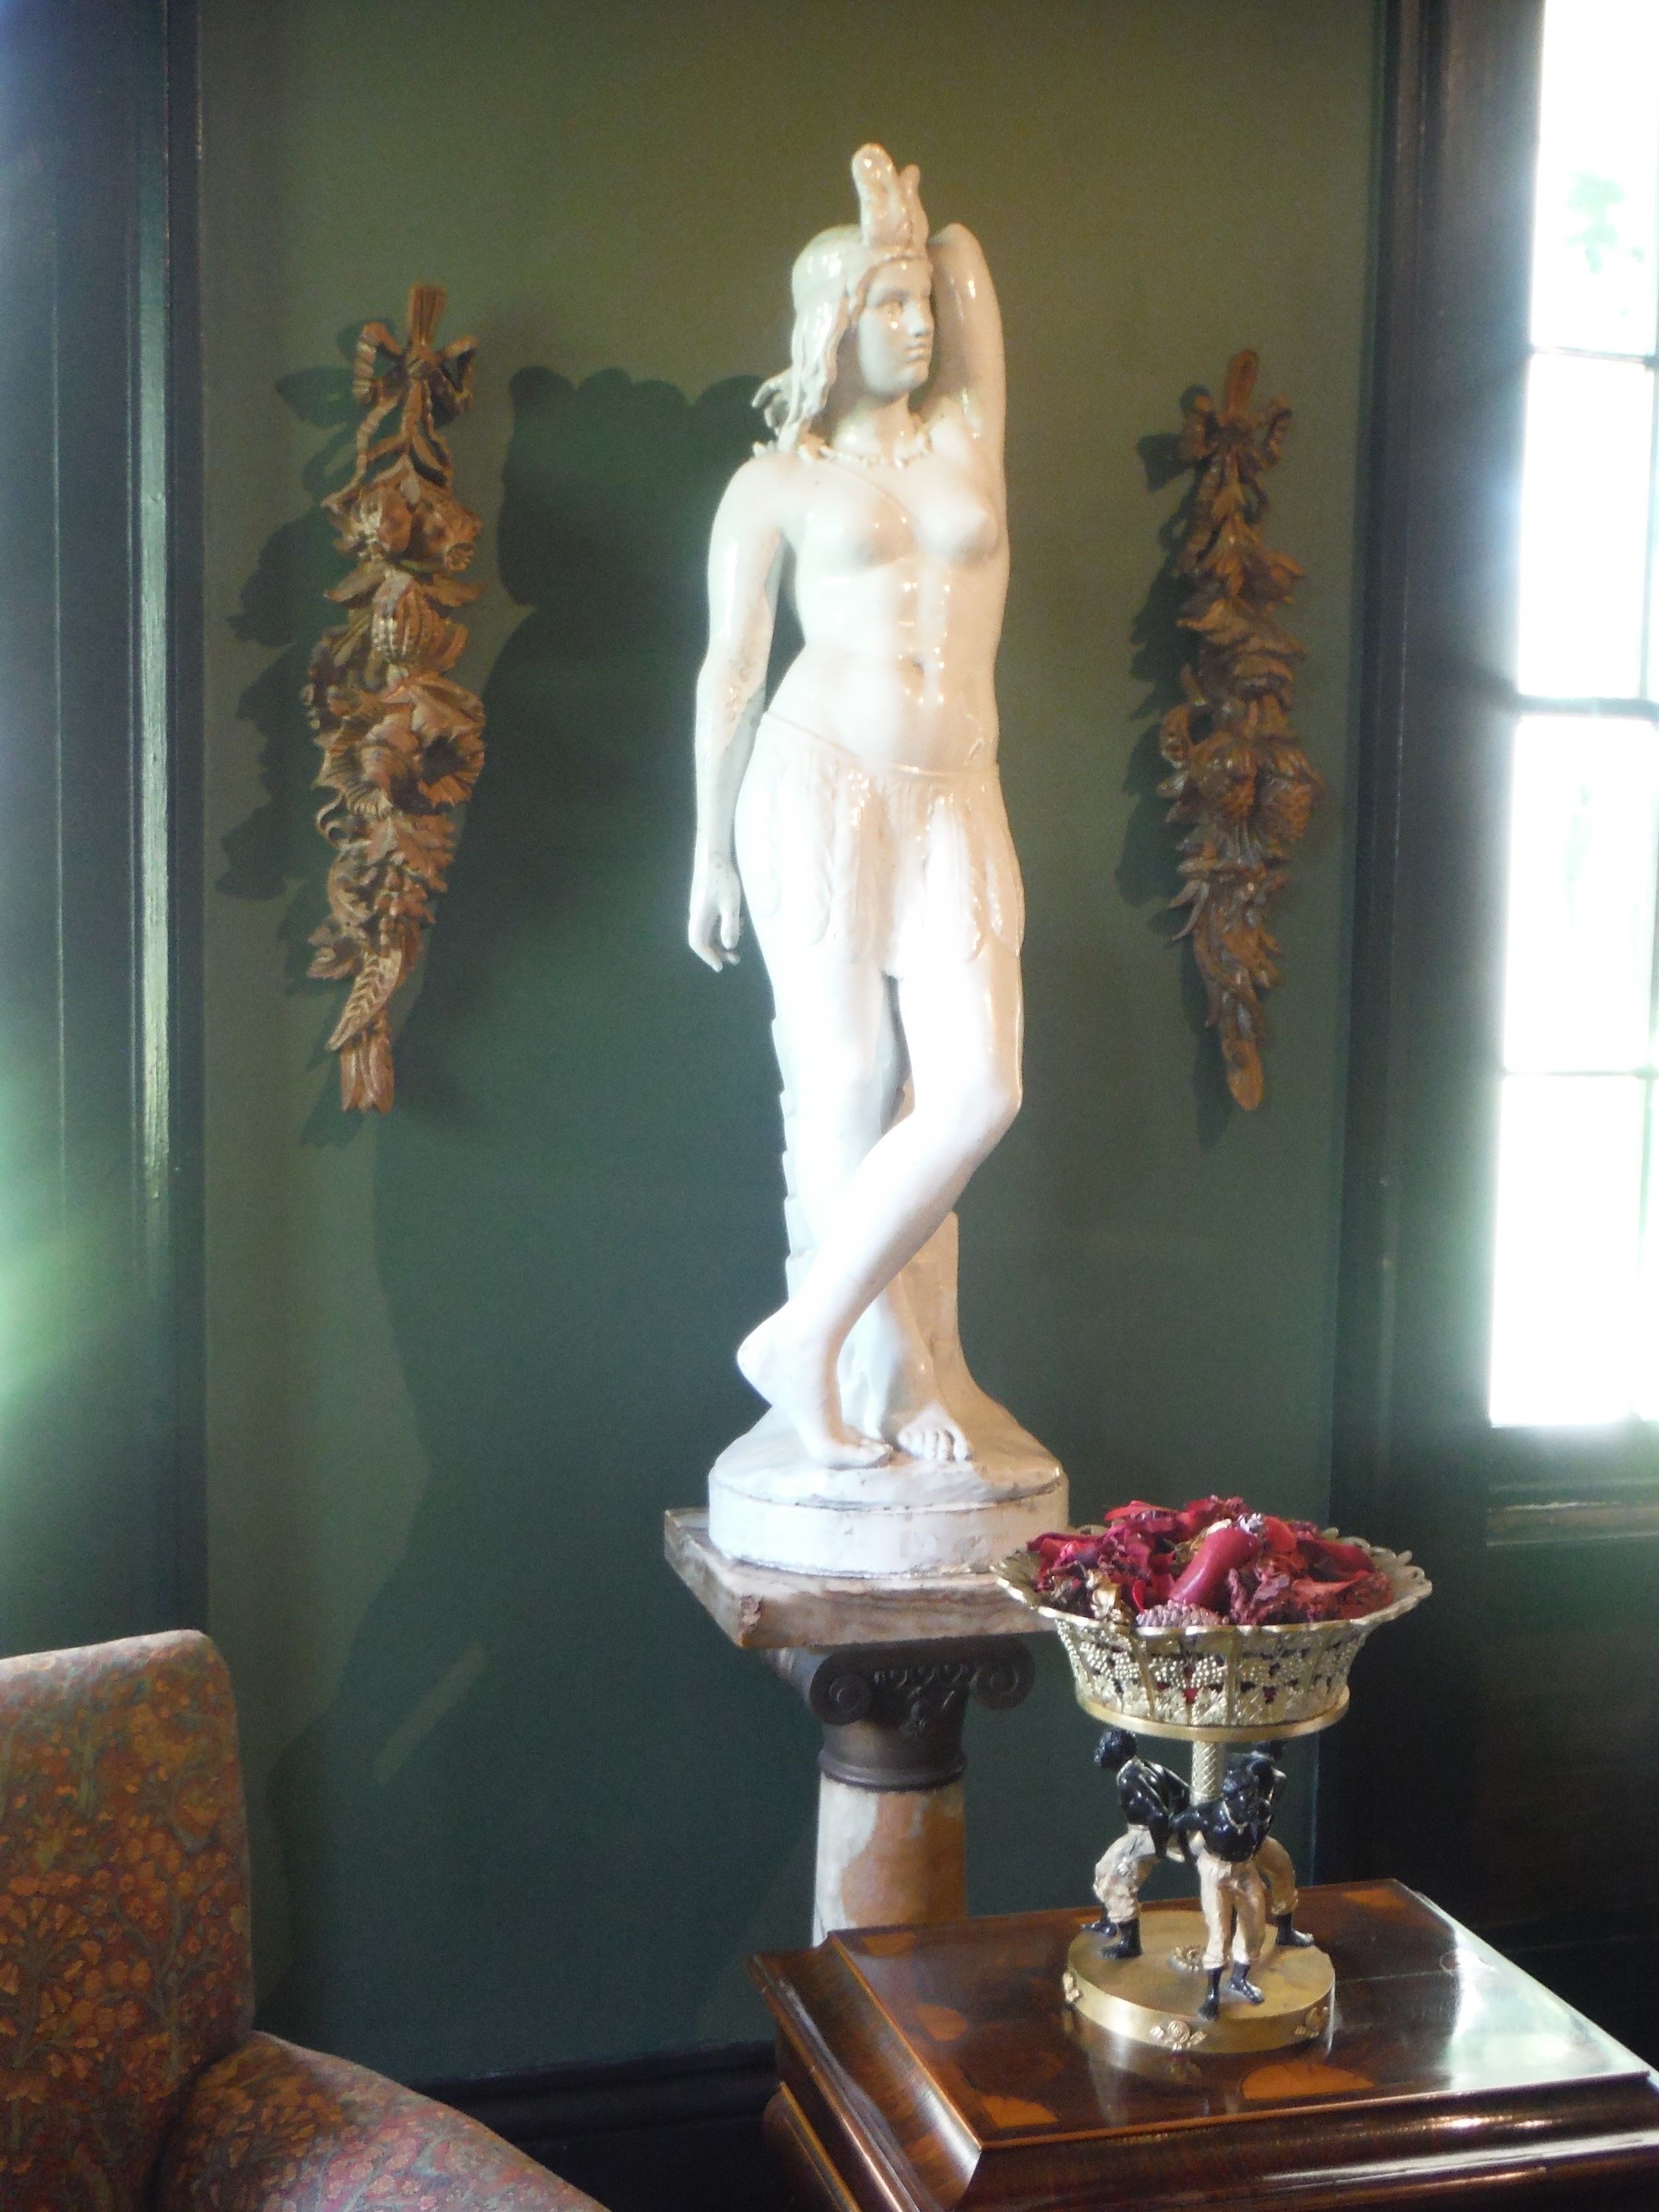 High art in the men's sitting room at Houmas House included this marble statue of a Native American. Below it, slaves are depicted lifting the ornate bowl of a golden candy dish.